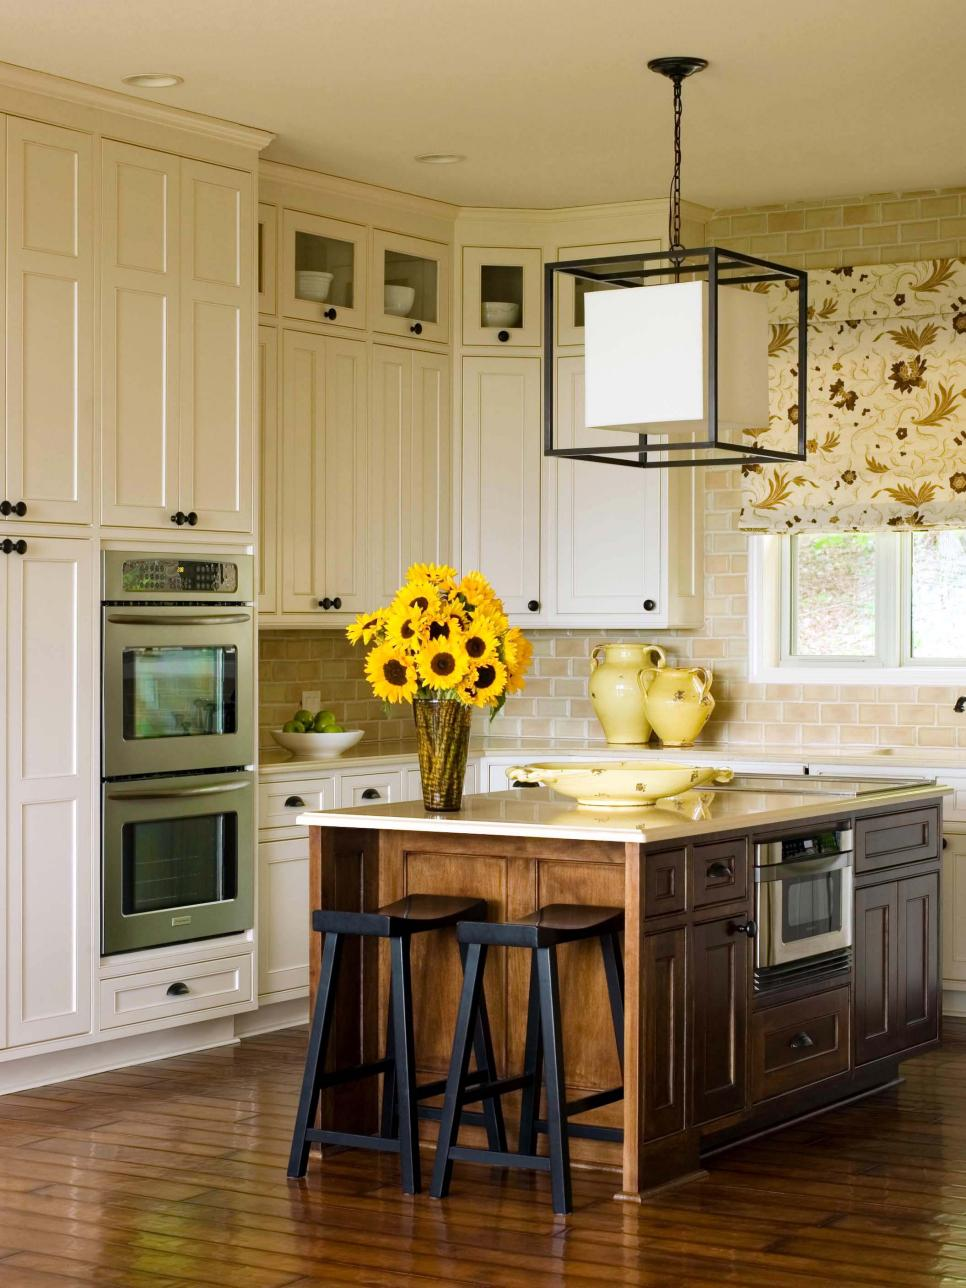 exceptional What To Put In Kitchen Cabinets #9: HGTV.com